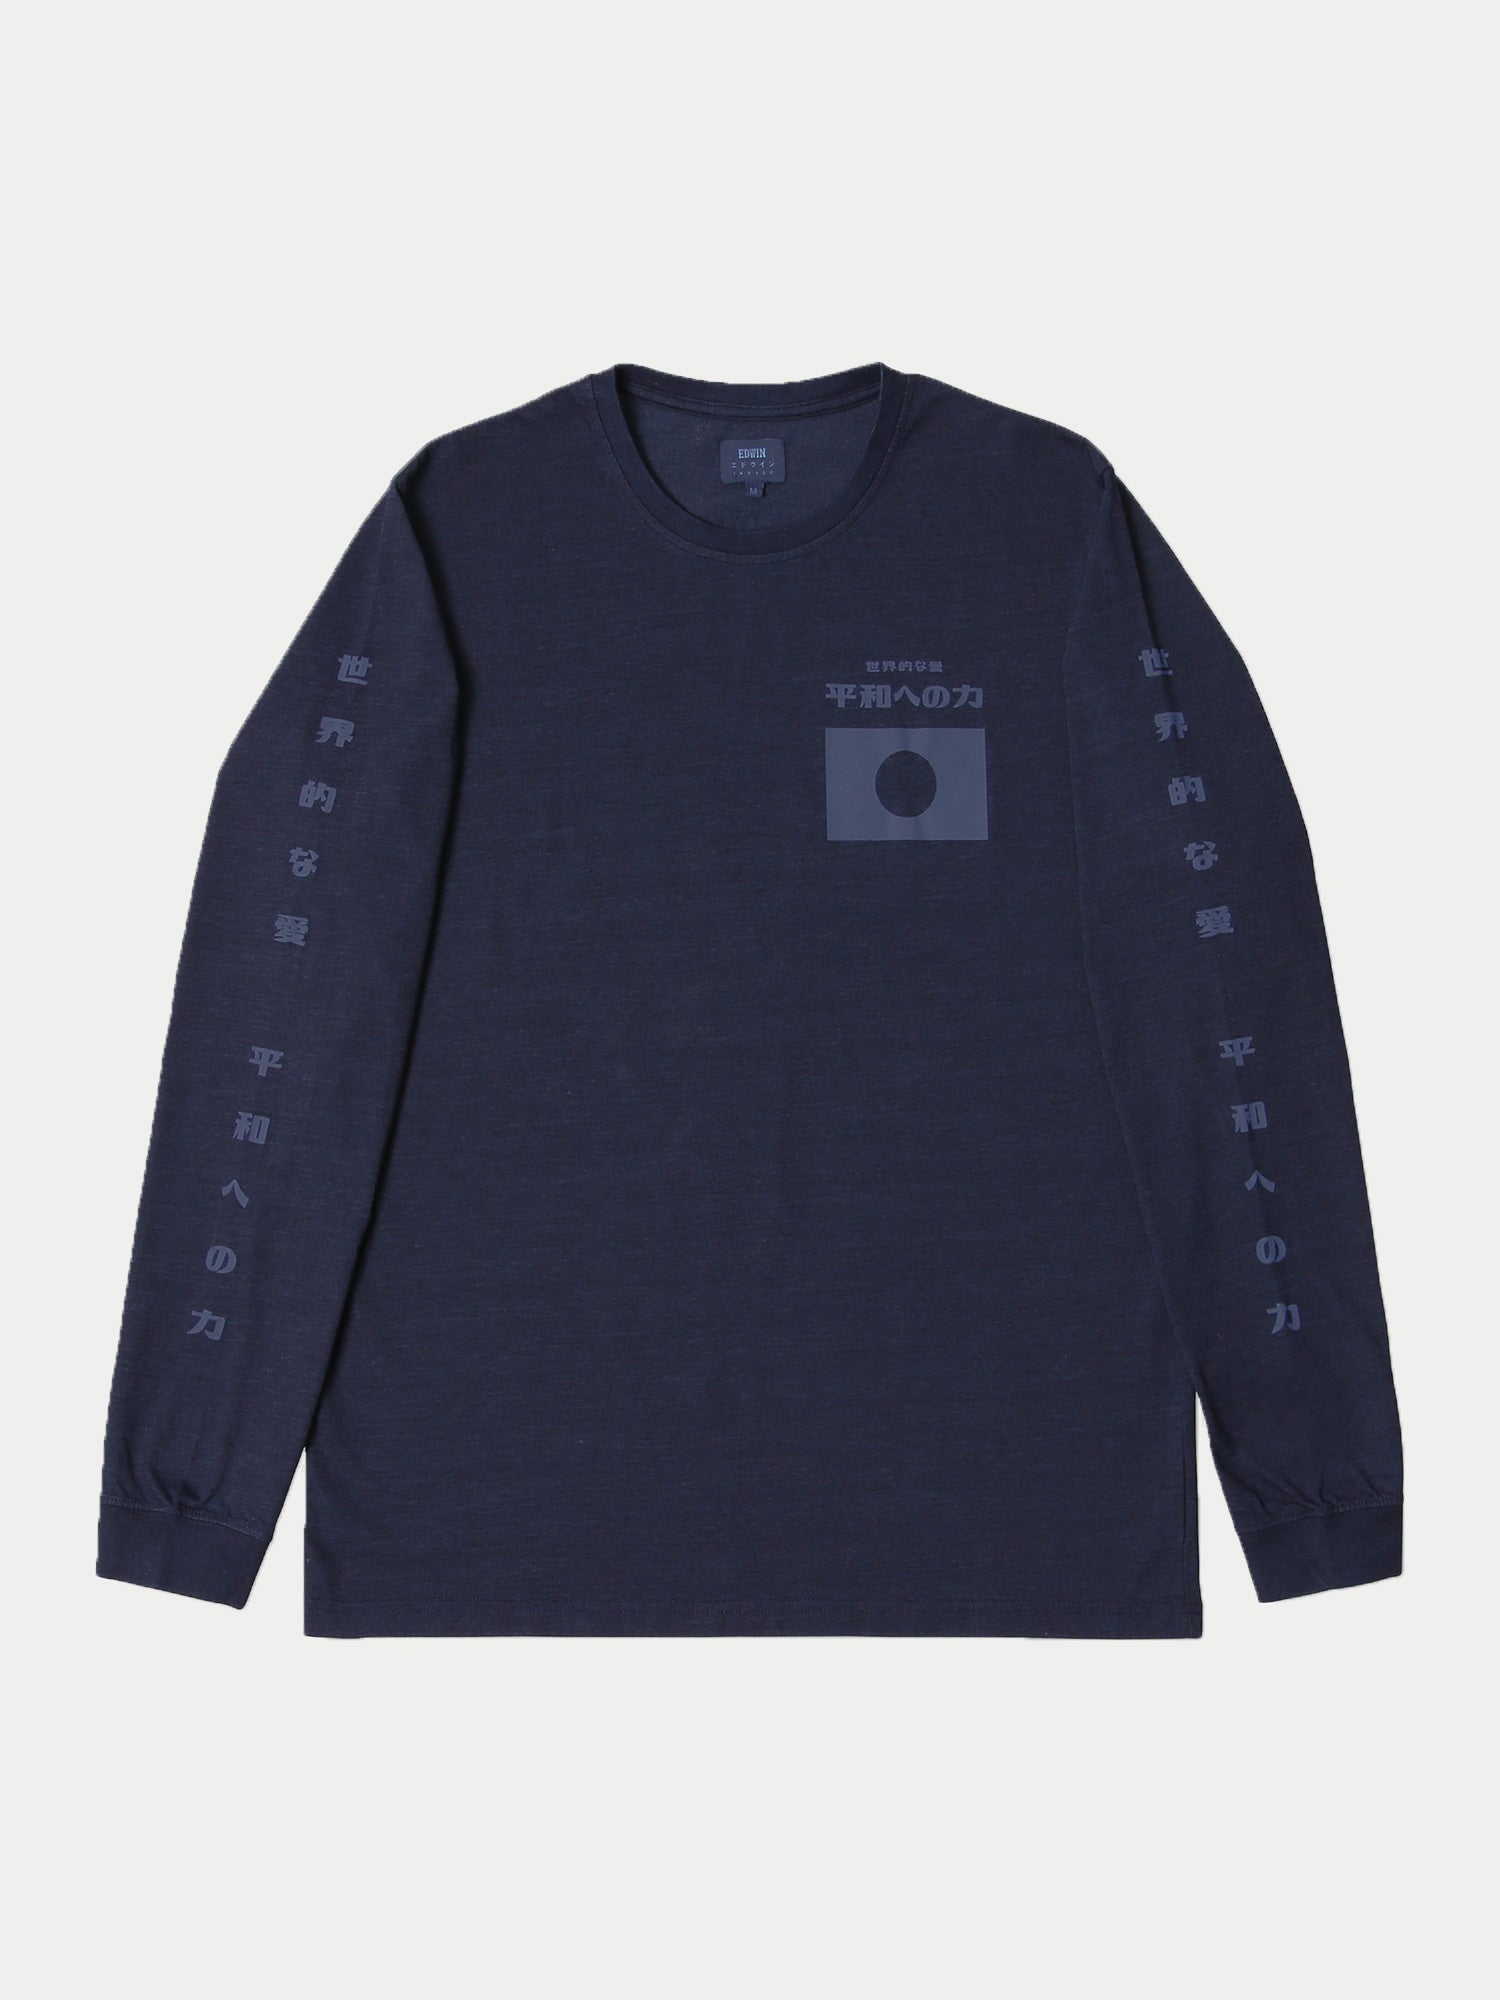 Edwin Bosozoku Dream L/S T-Shirt (Dark Indigo)